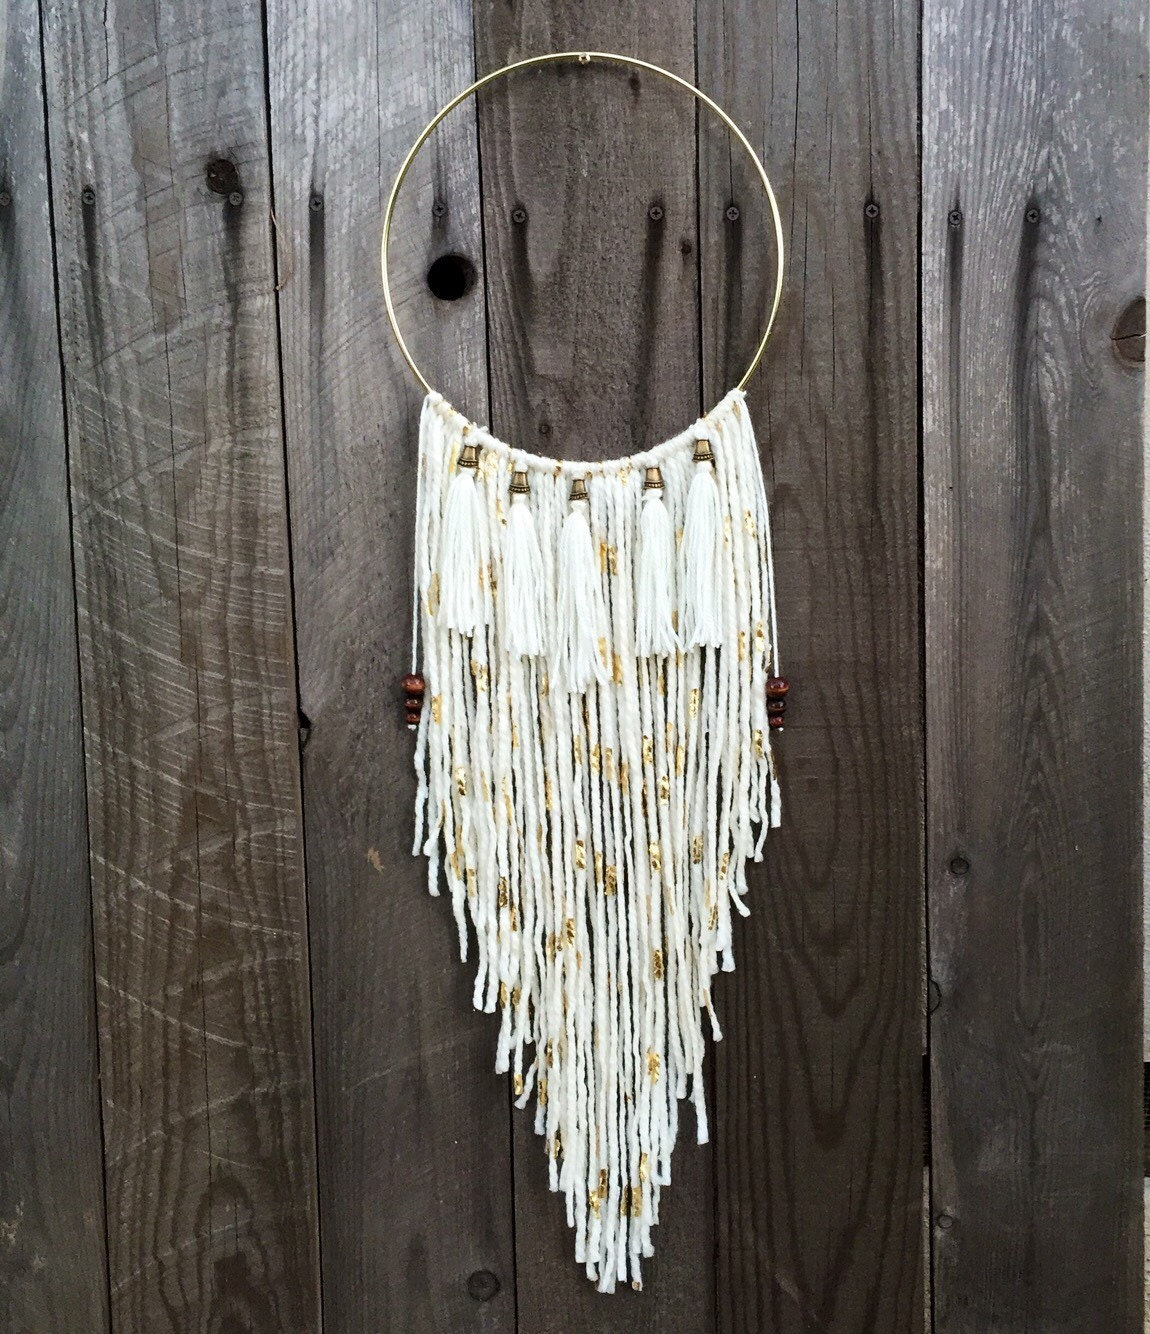 Wall Decorations Boho : Dreamcatcher boho wall hanging and decor tassel wind chime